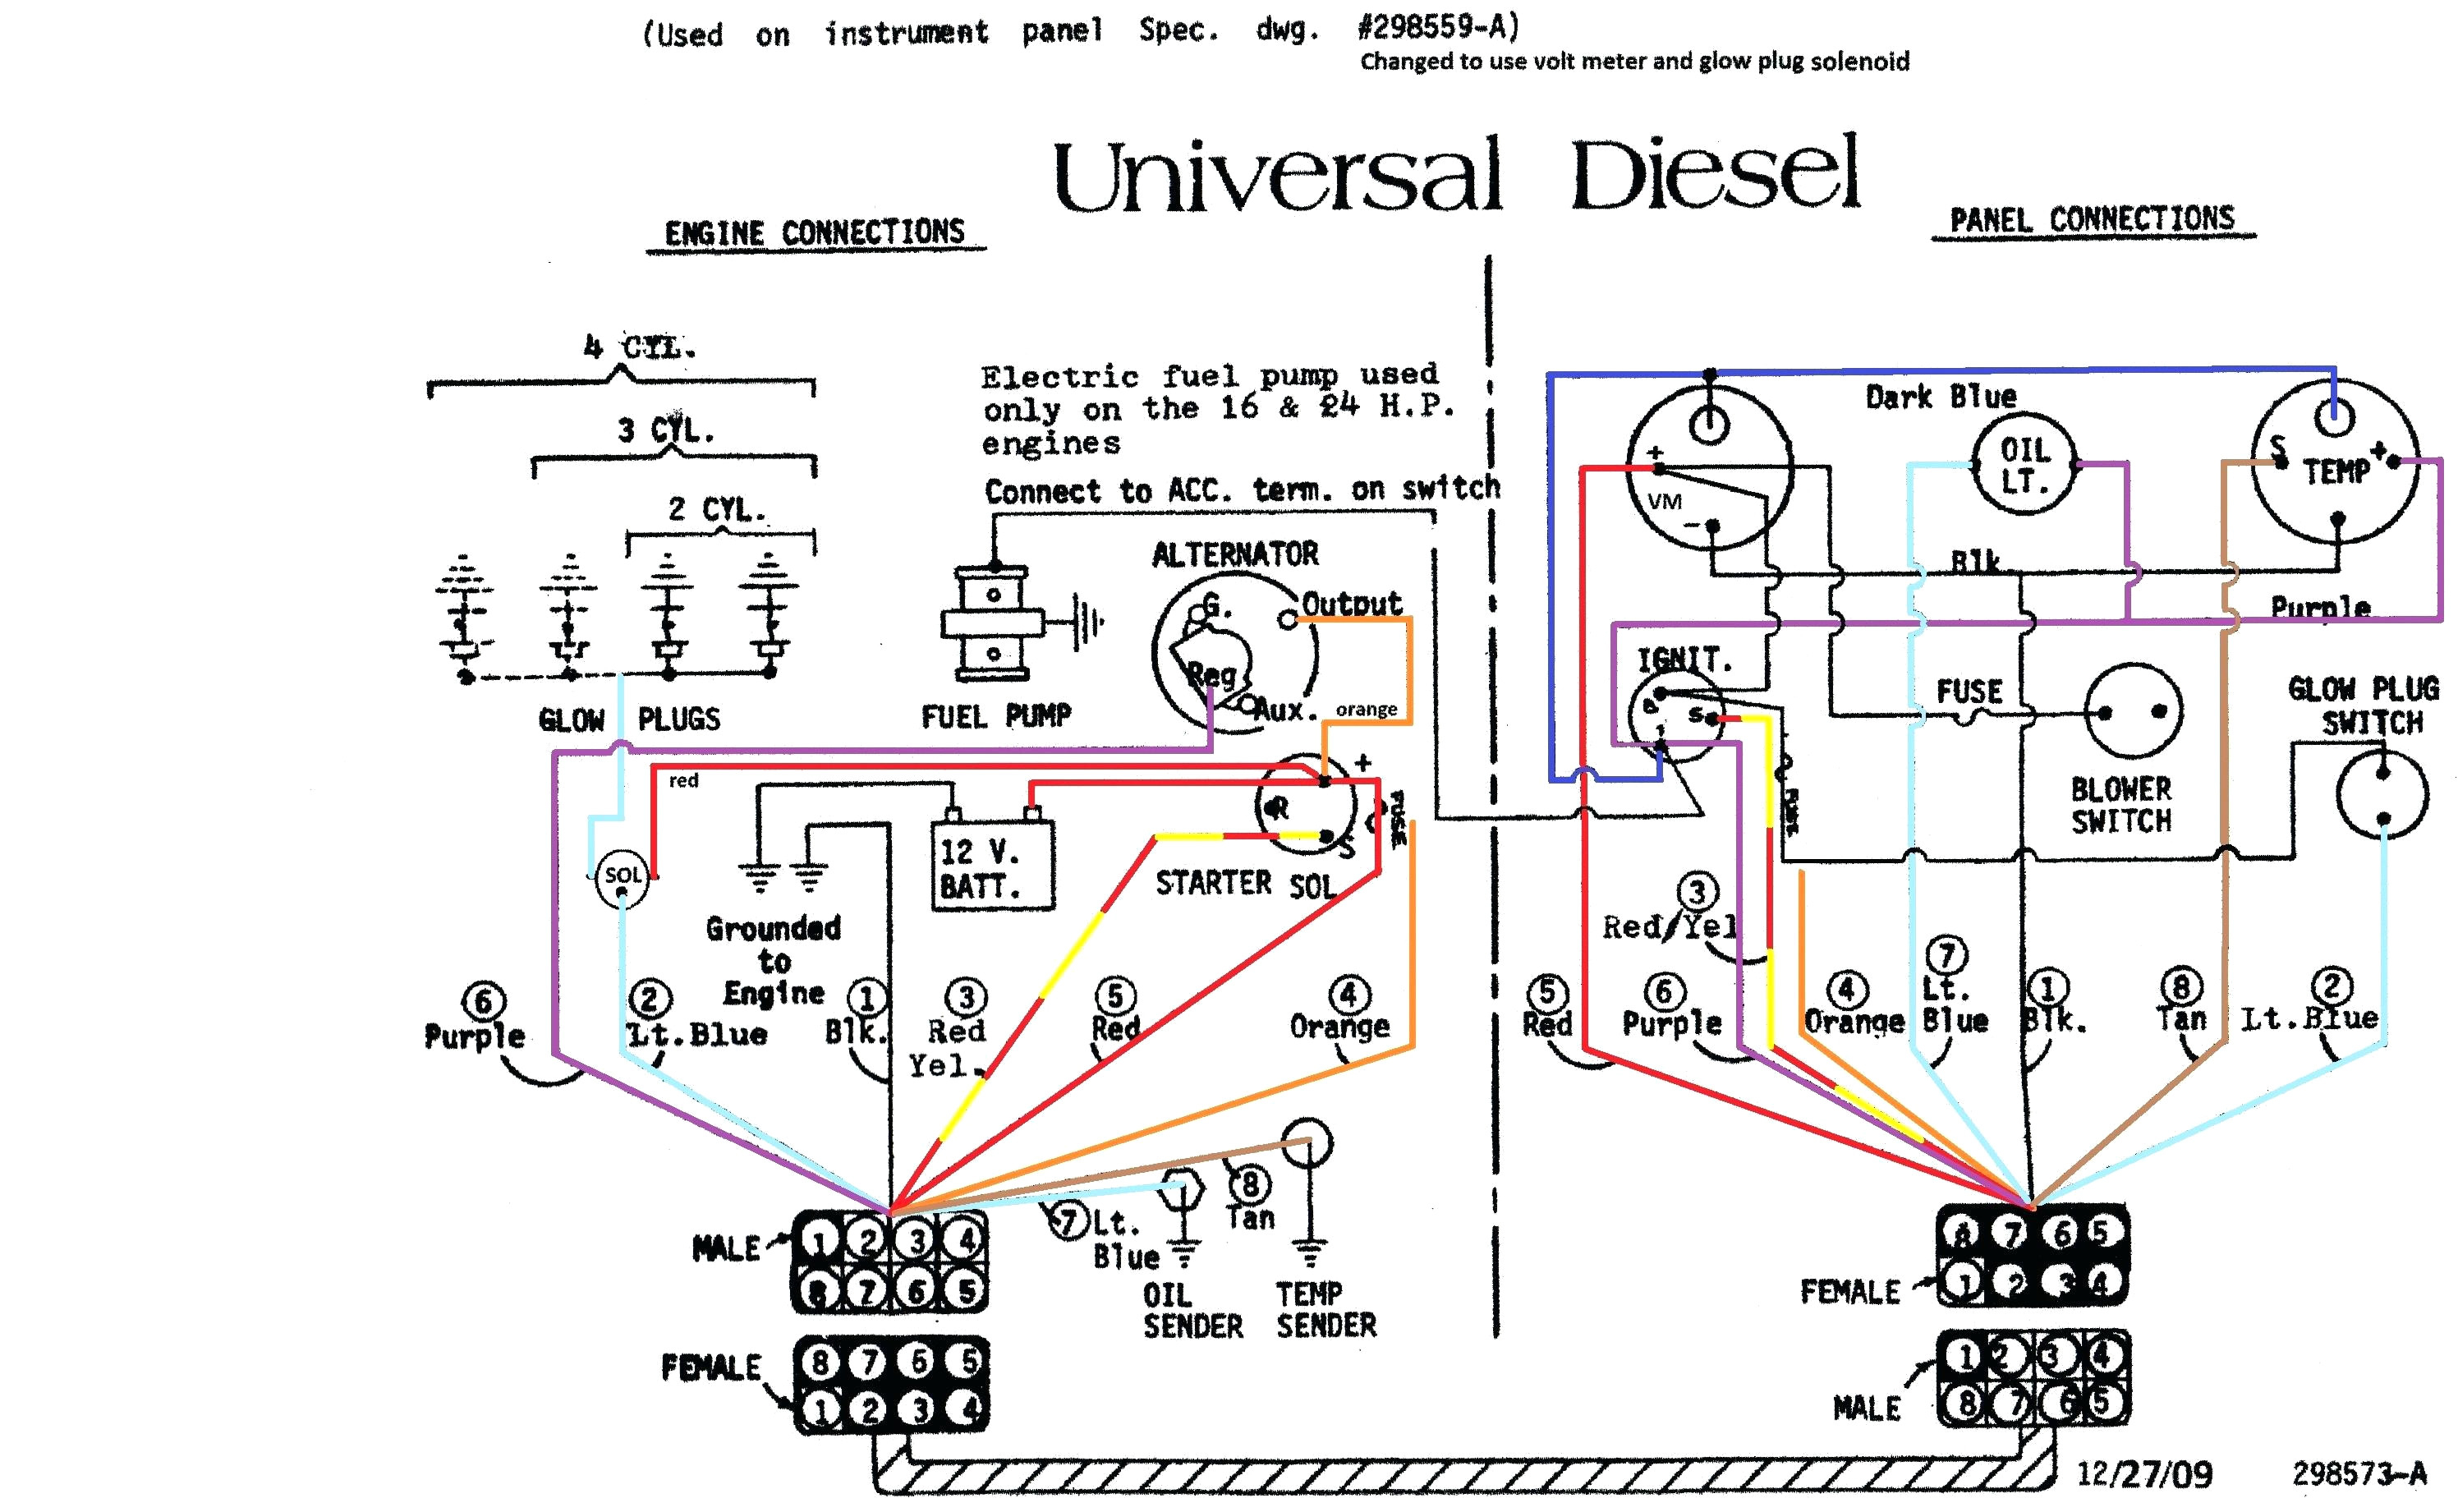 Jeep Wrangler Radio Wiring Diagram on 1990 jeep wiring diagram, 2.5l jeep engine diagram, 90 ford bronco ii wiring diagram, 90 ford f150 wiring diagram, 90 jeep wrangler voltage regulator, 90 ford mustang wiring diagram, 89 jeep yj wiring diagram, 1990 jeep wrangler parts diagram, 90 jeep wrangler ecu, 90 honda civic wiring diagram, 1990 jeep wrangler engine diagram, 94 jeep wiring diagram, 2005 jeep wiring diagram, 90 honda accord wiring diagram, jeep ignition switch wiring diagram, 90 jeep wrangler neutral safety switch, 90 dodge dakota wiring diagram, 90 chevy silverado wiring diagram, 90 jeep wrangler manual, 90 jeep wrangler timer,